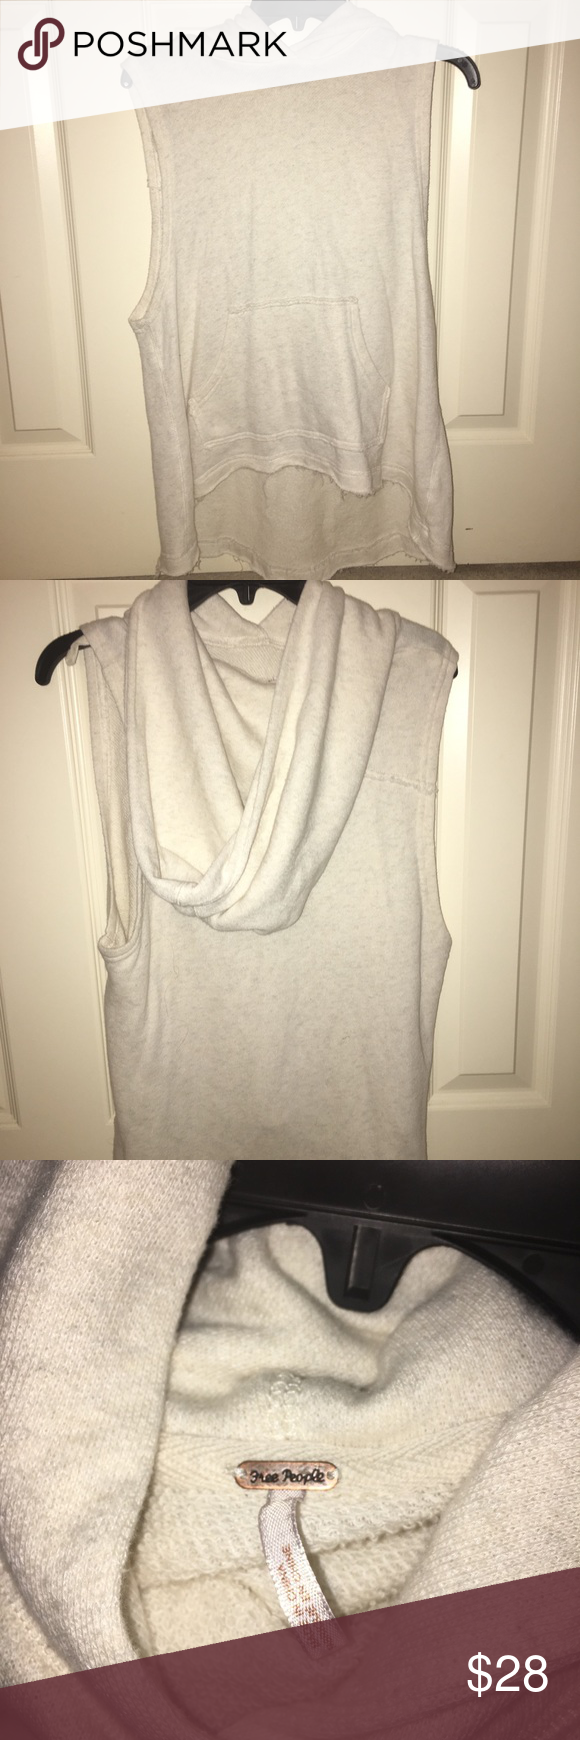 Free People sleeveless top with hood Never been worn!! Really cute. Has a pocket. Free People Tops